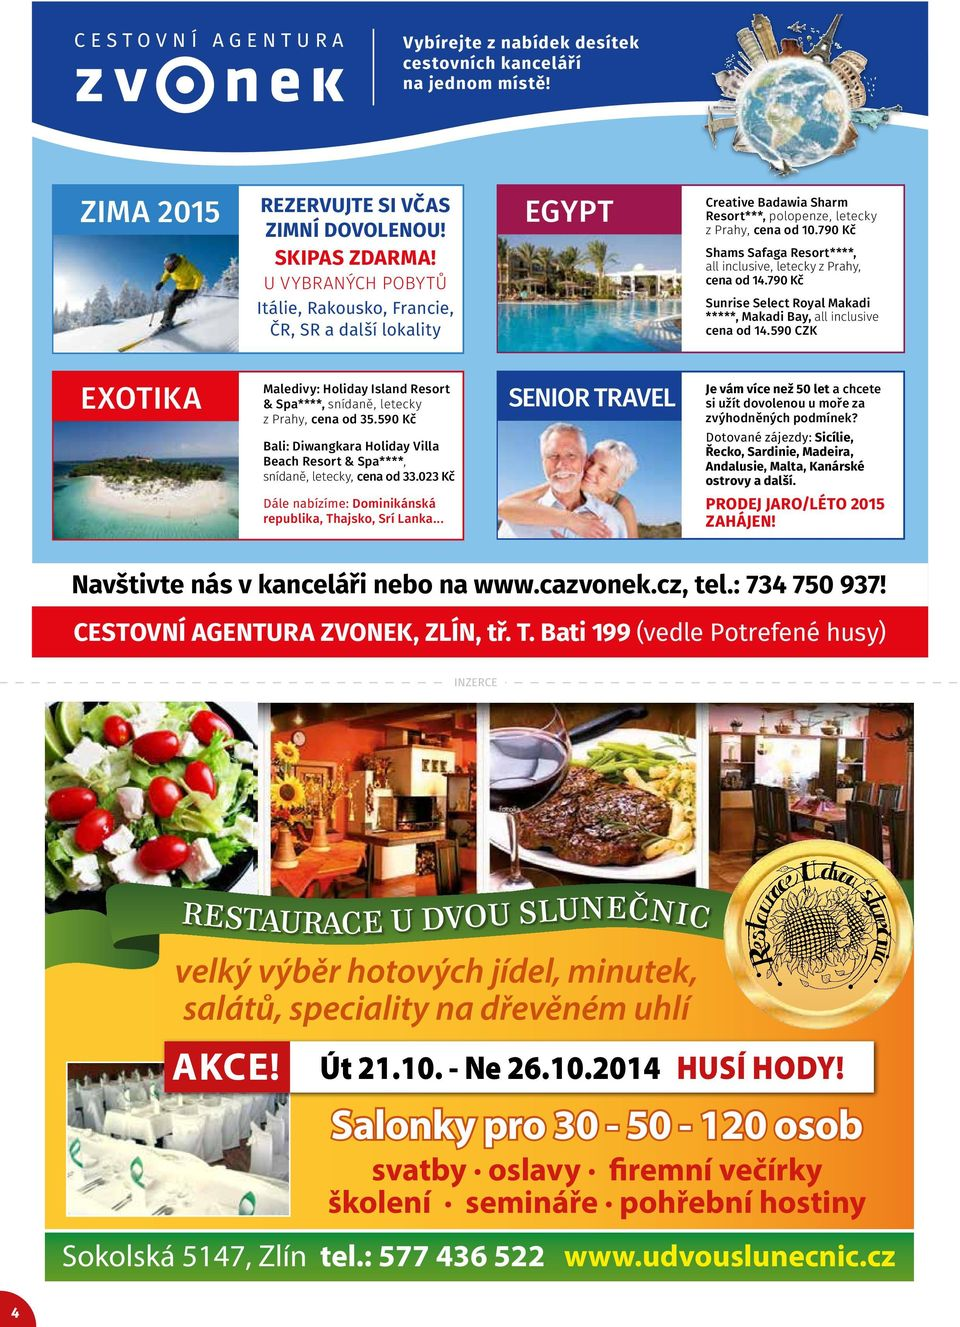 790 Kč Shams Safaga Resort****, all inclusive, letecky z Prahy, cena od 14.790 Kč Sunrise Select Royal Makadi *****, Makadi Bay, all inclusive cena od 14.